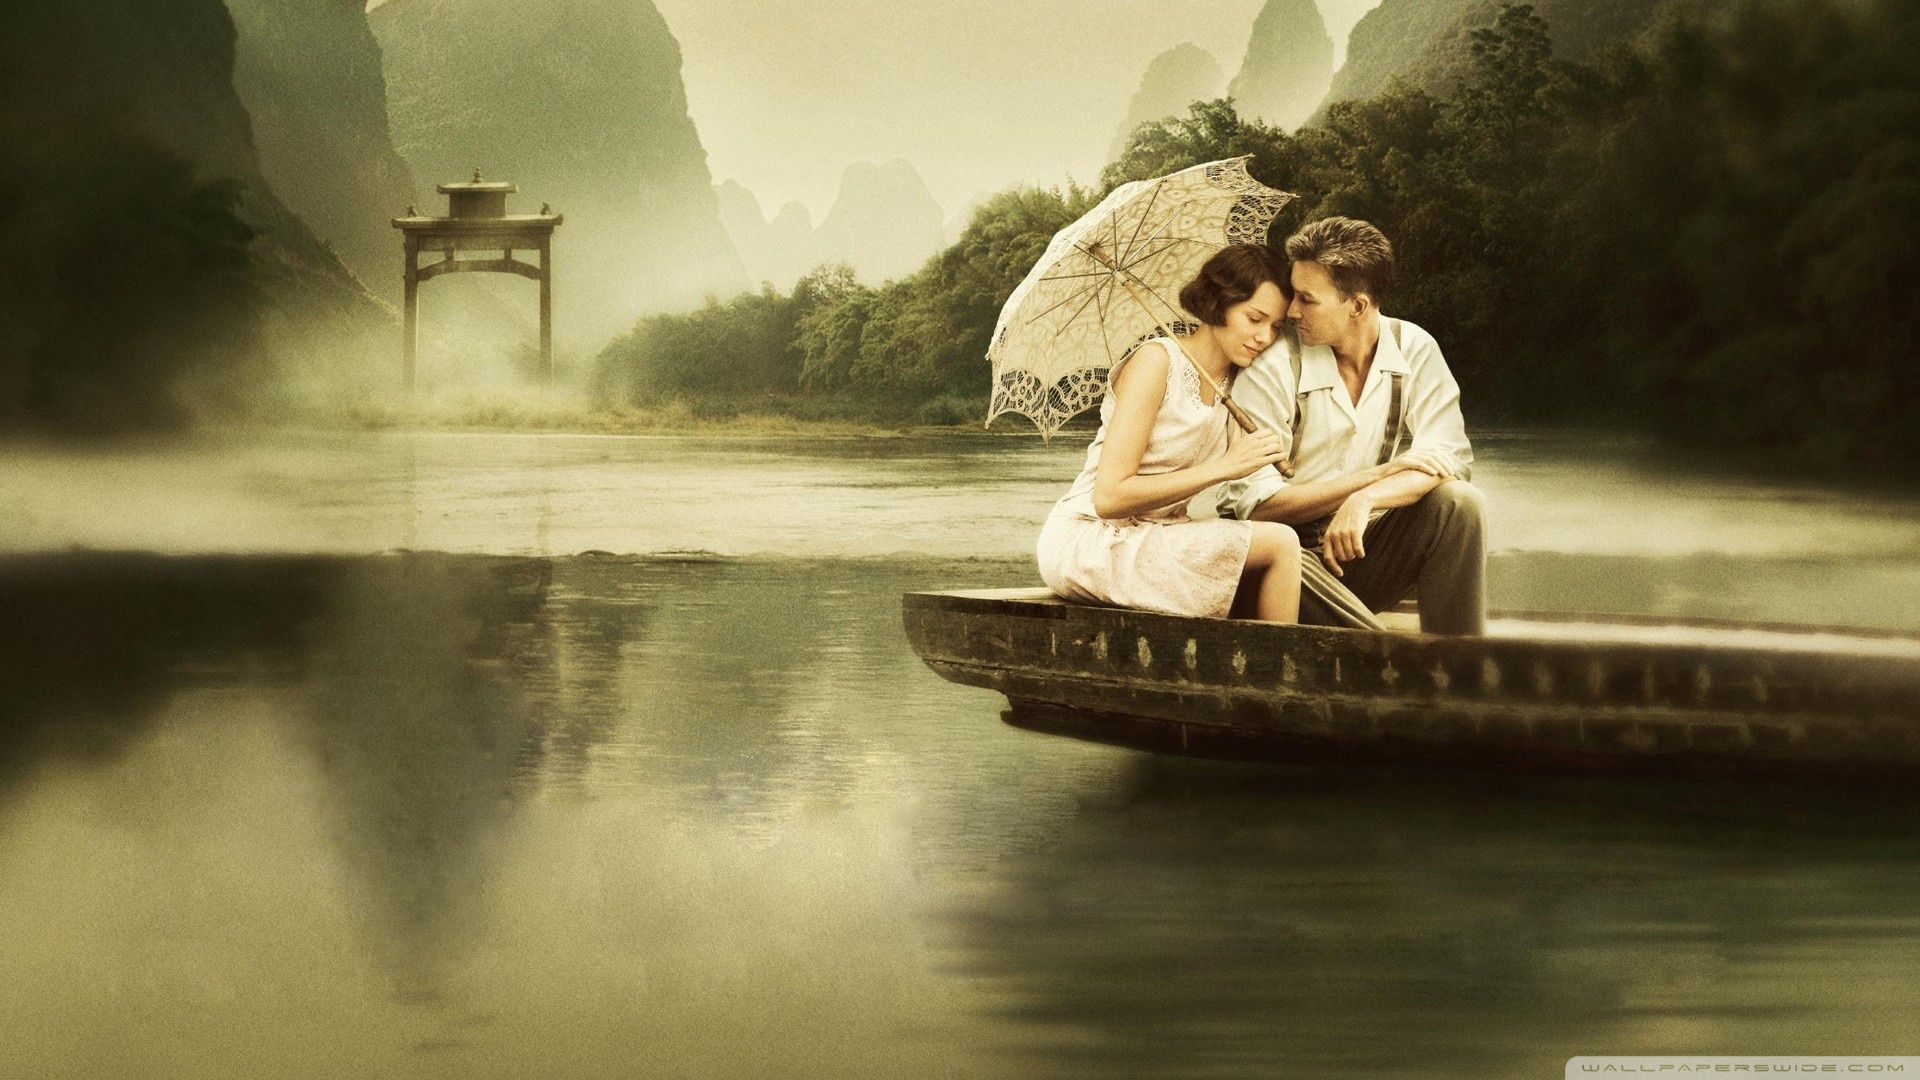 Wallpaper download love story - You Can View Download And Comment On Love Story Free Hd Wallpapers For Your Desktop